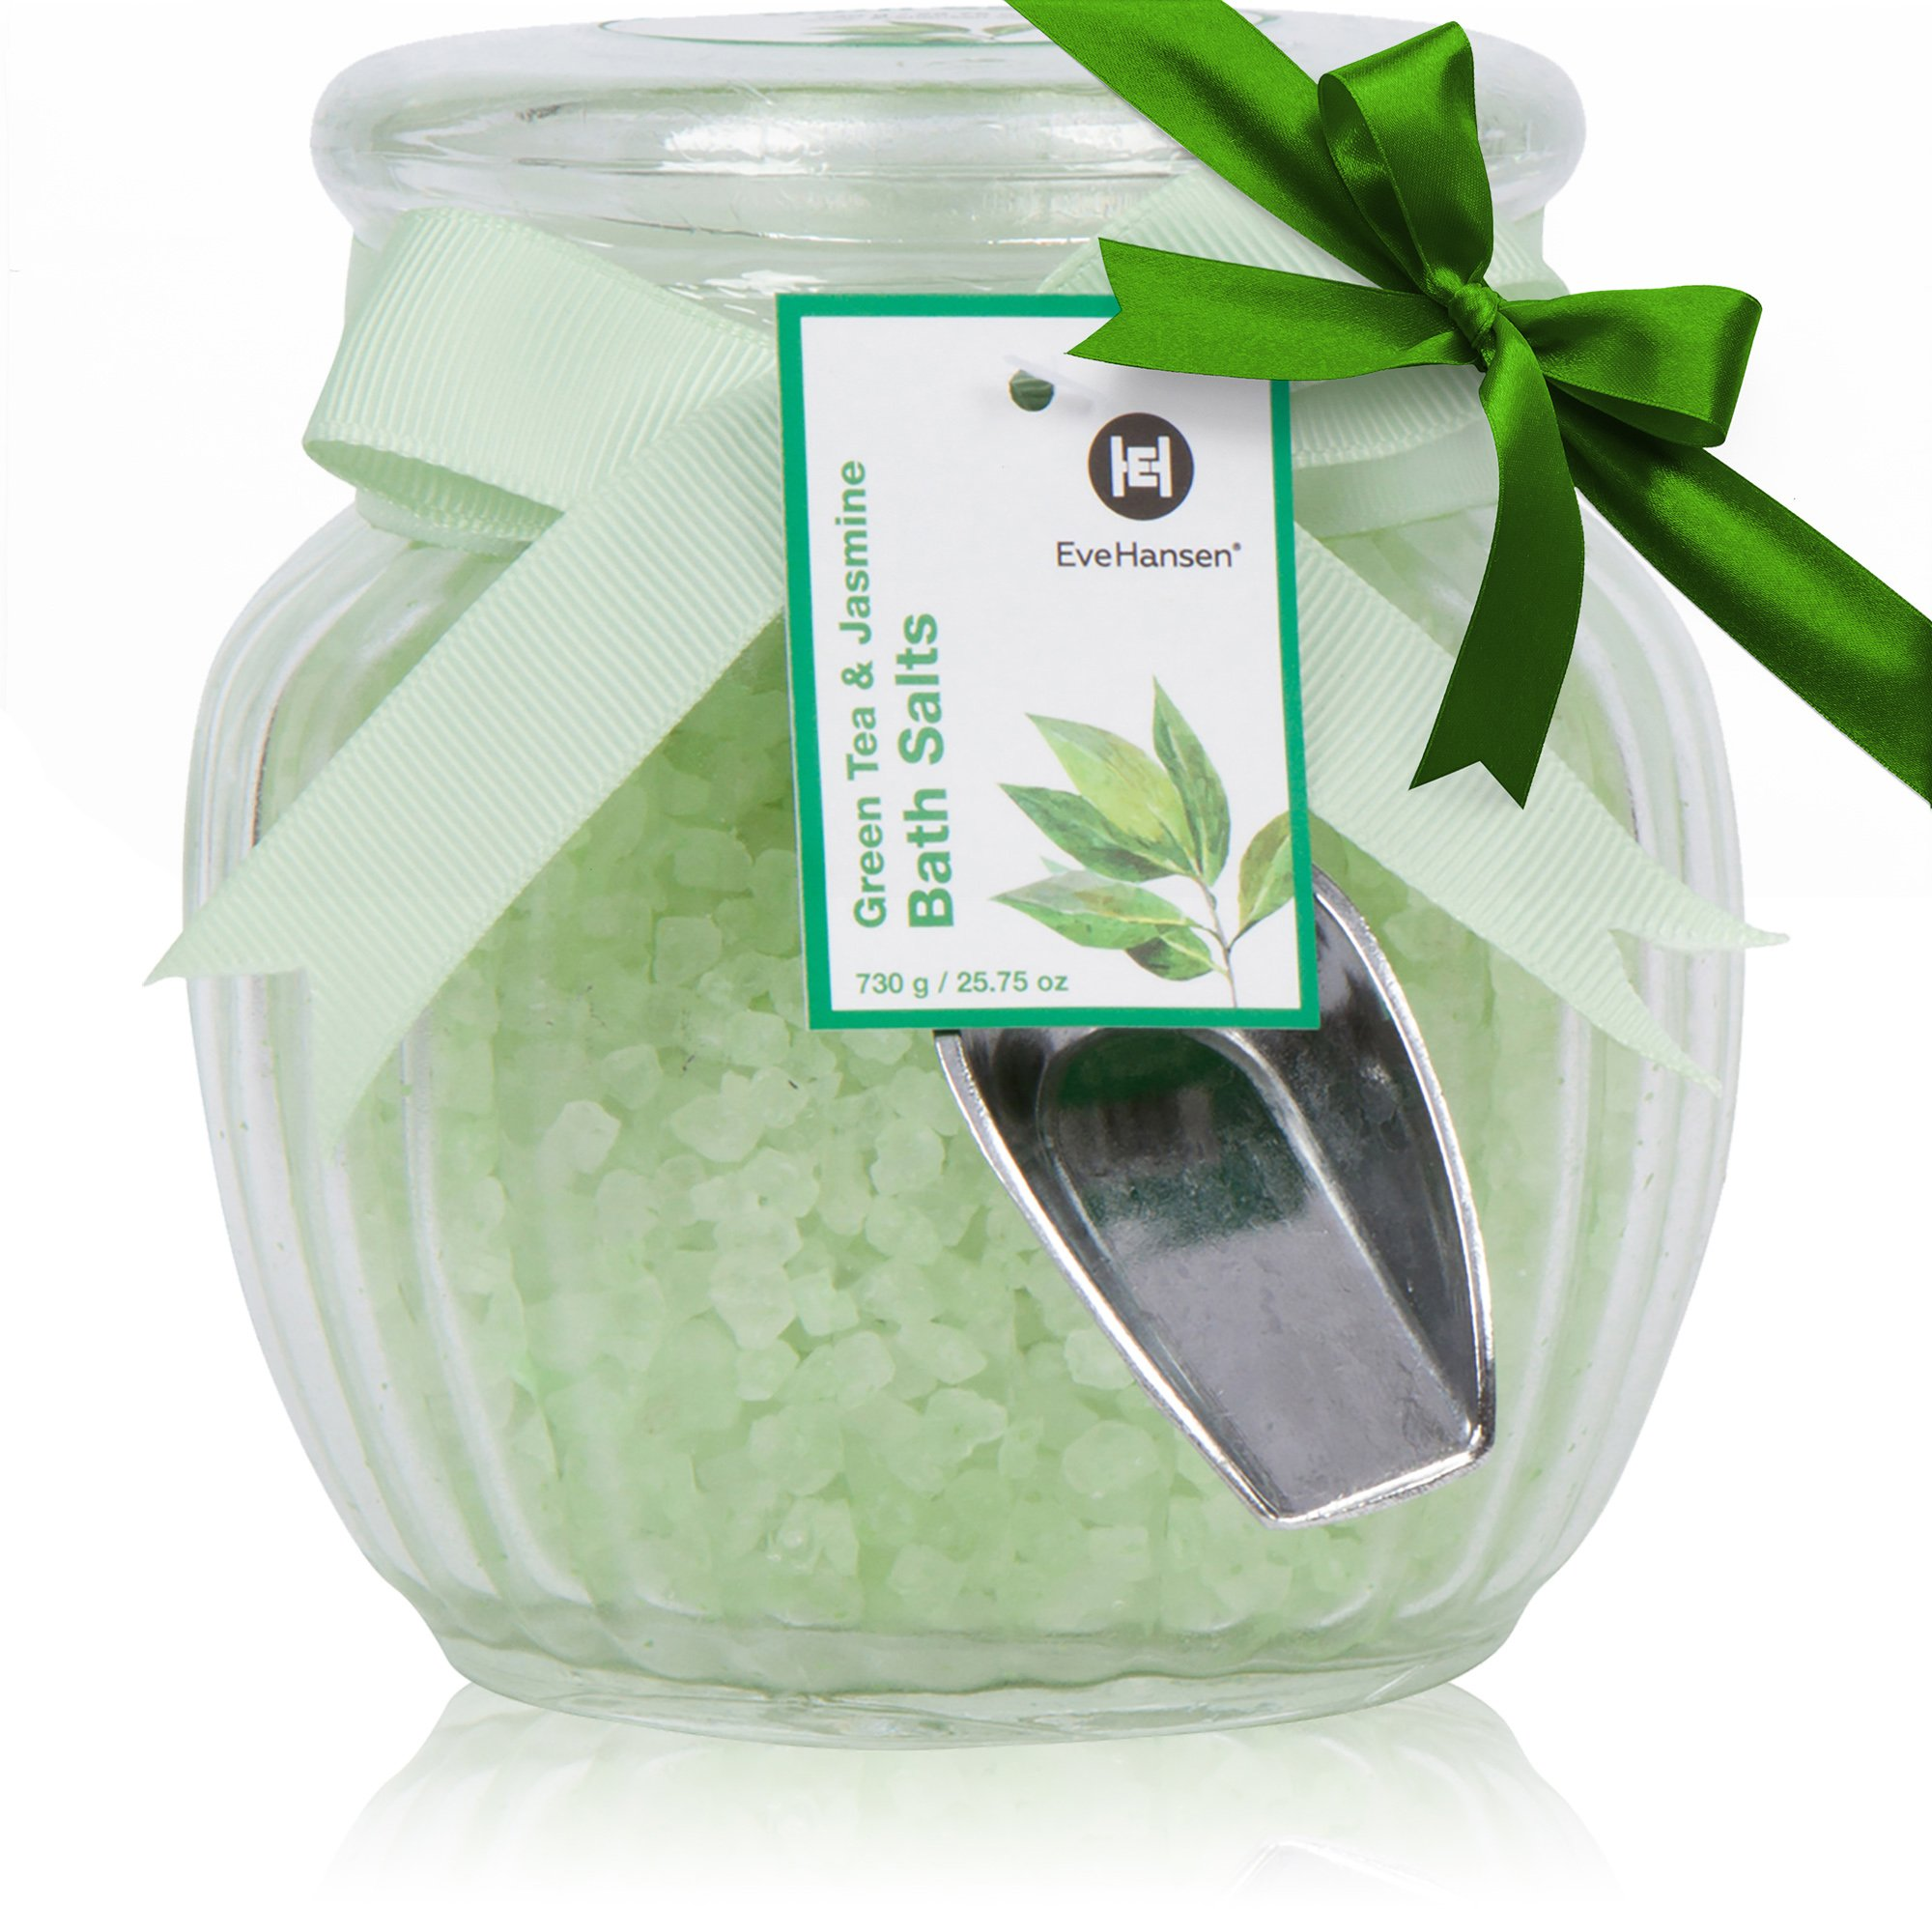 Natural Bath Salts by Eve Hansen in Green Tea and Jasmine Scent. Large 25 Ounce Glass Jar. Skin Nourishing And Relaxing Bath Salt. Great for Gift. Aromatherapy Essential Oils Soothing Bath Treatment.